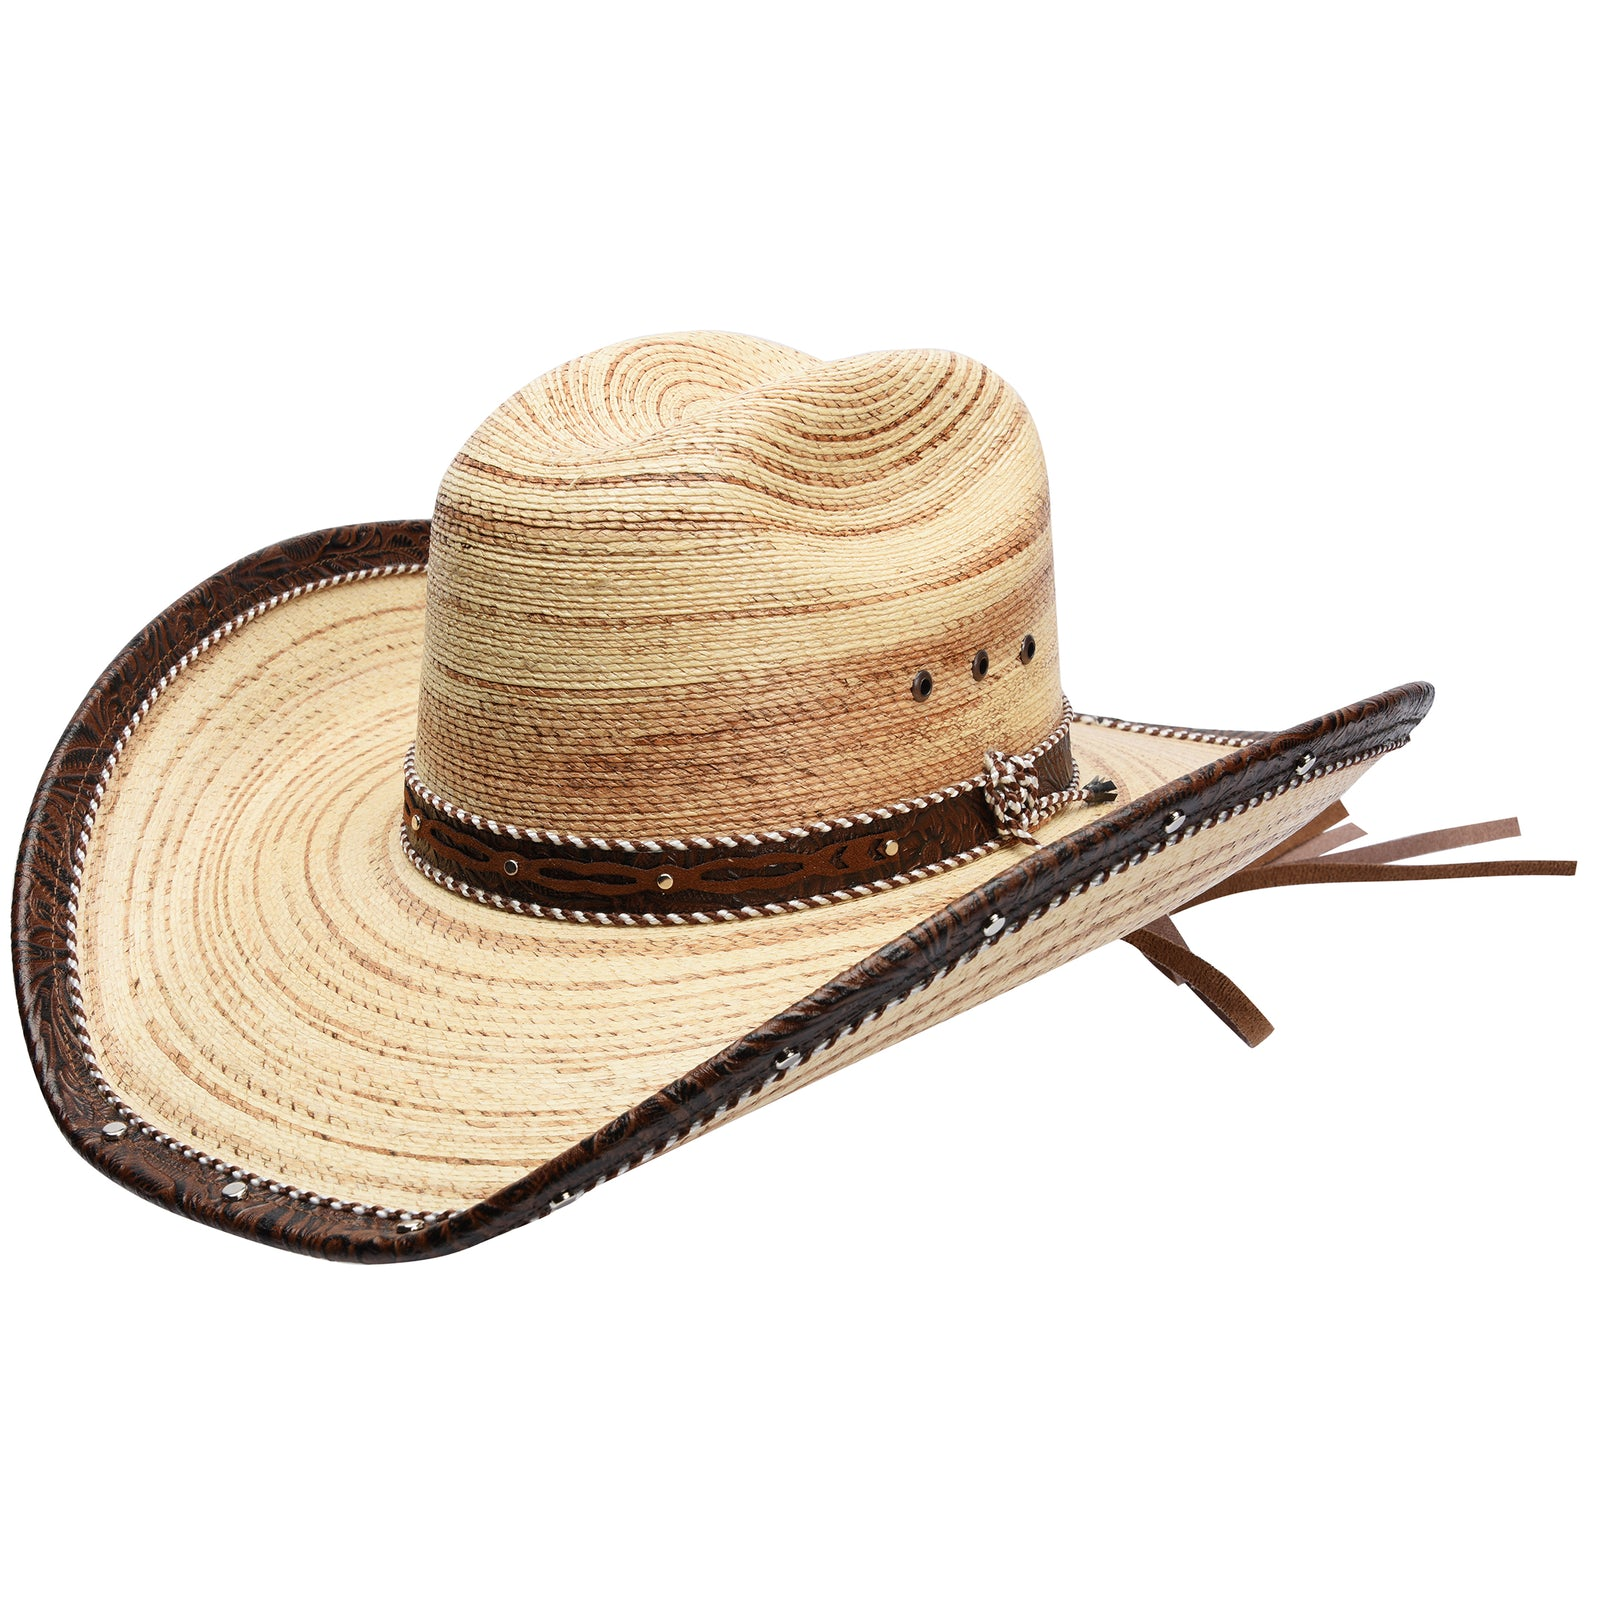 Palm Straw Hat by Stone Hats